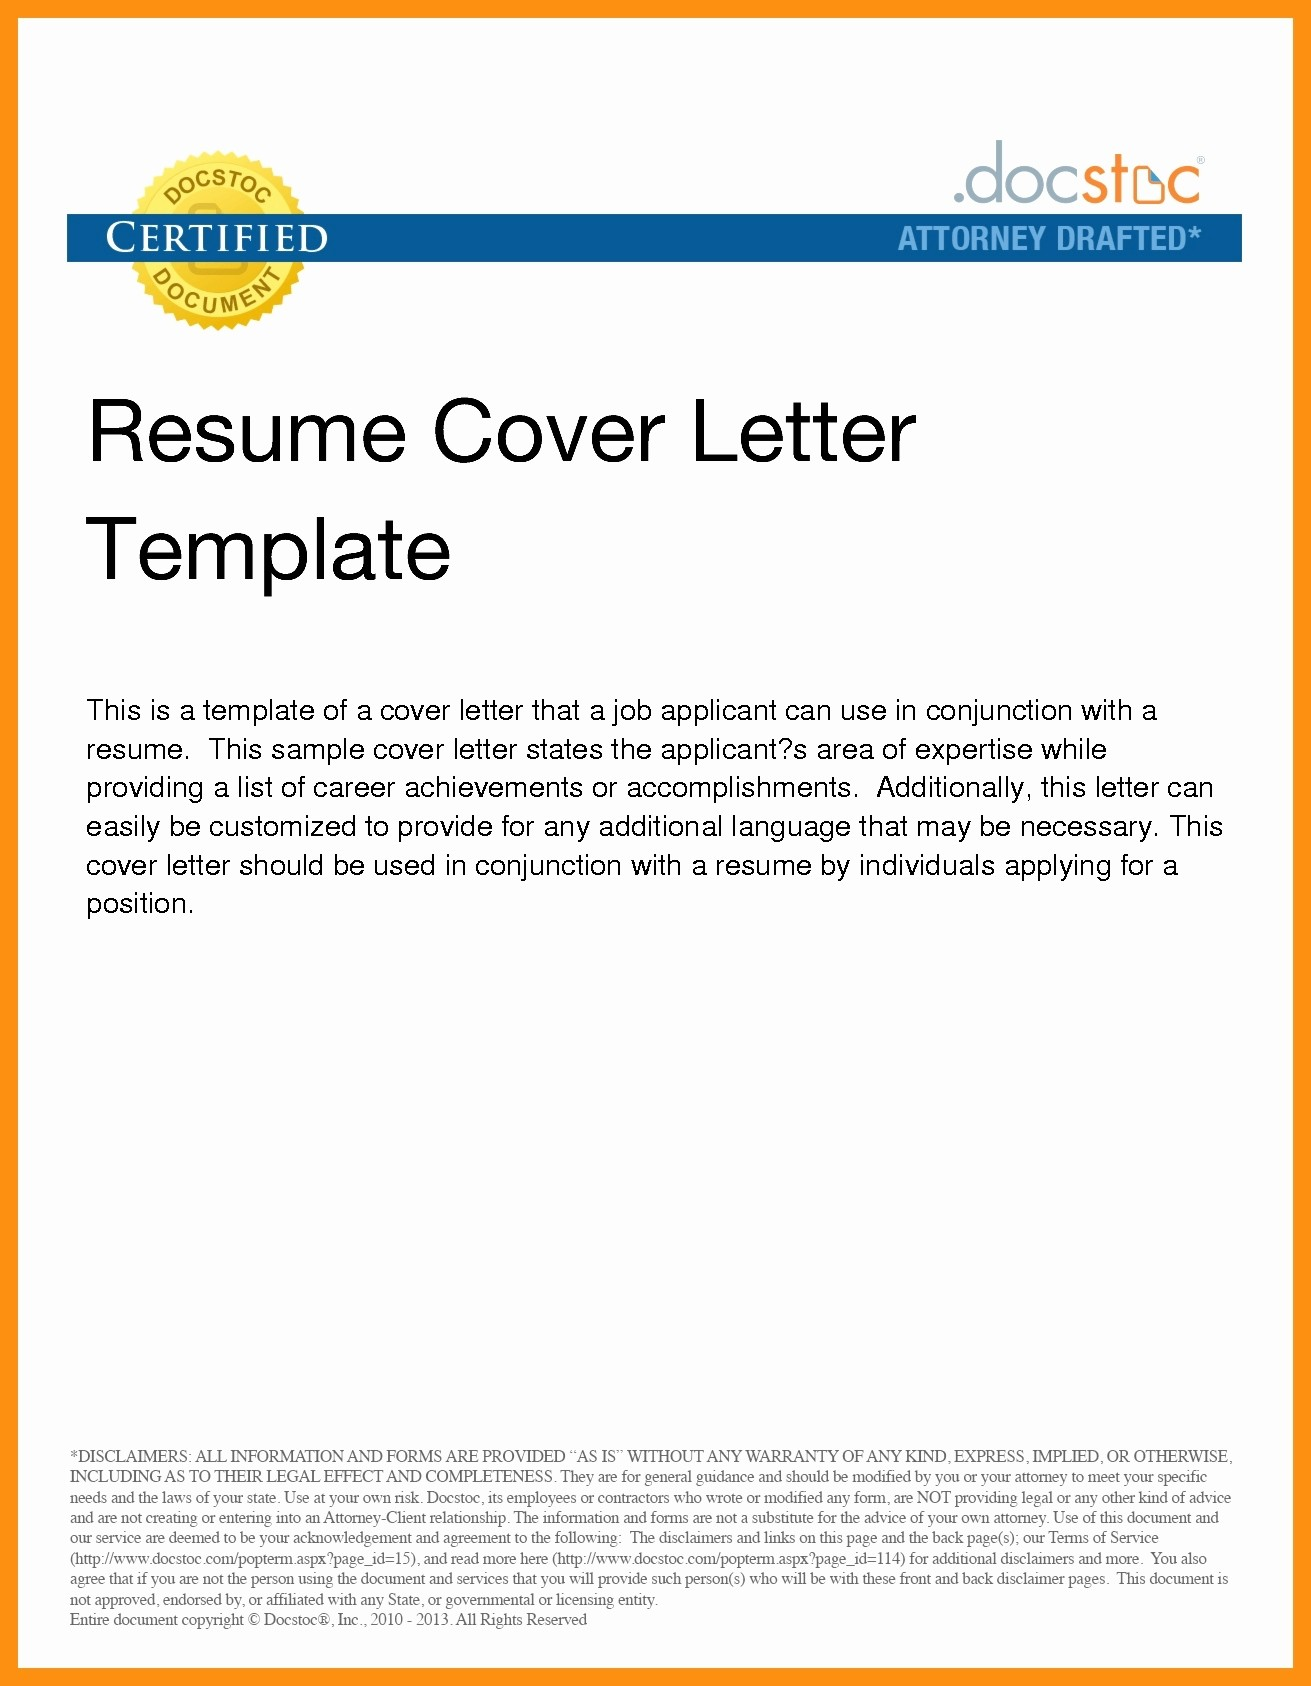 to write resume email cover letter sample send for job format emails sending by samples Resume Send Resume For Job Email Format